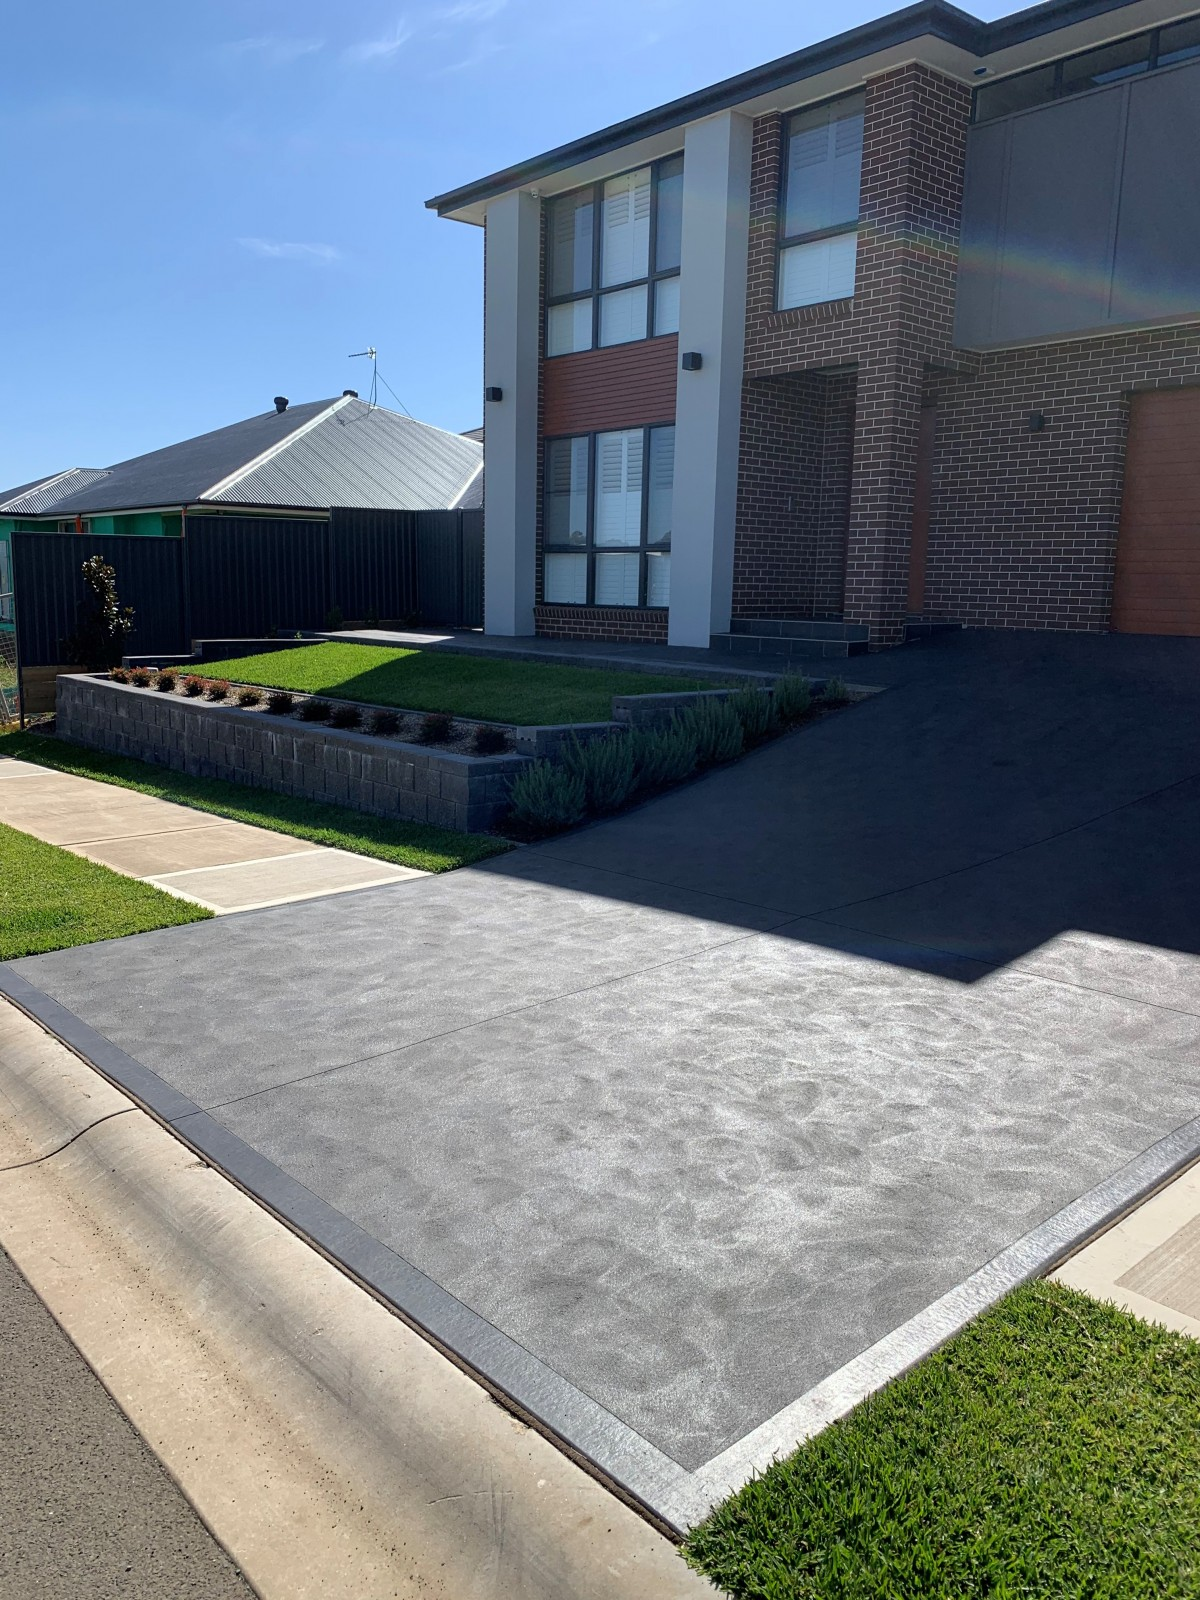 Sydney concrete installation for driveway Natural Services